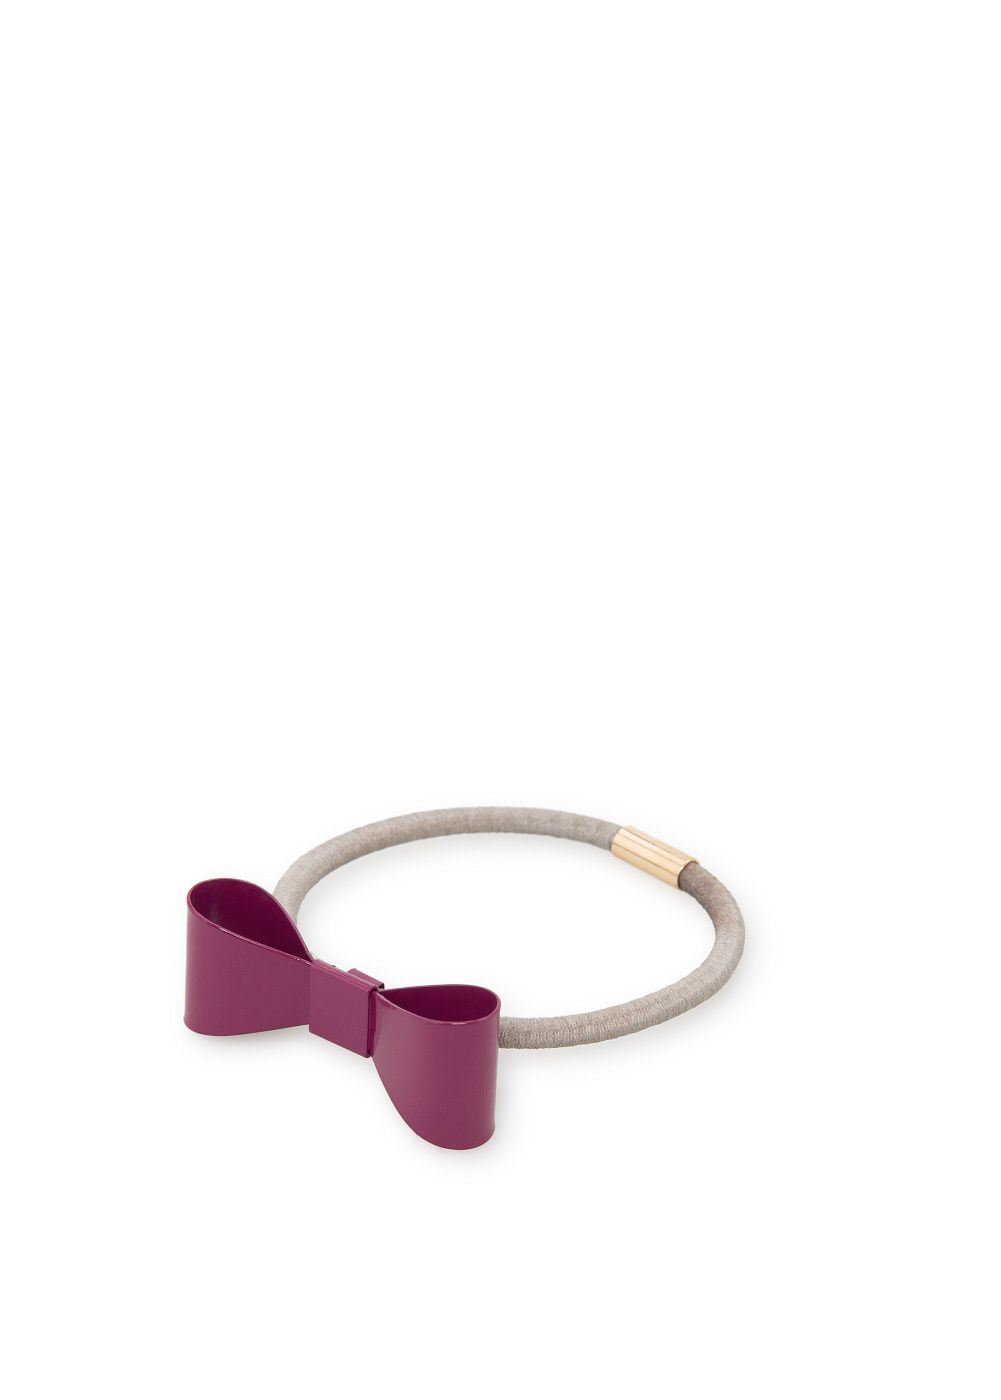 Girls bow hair tie